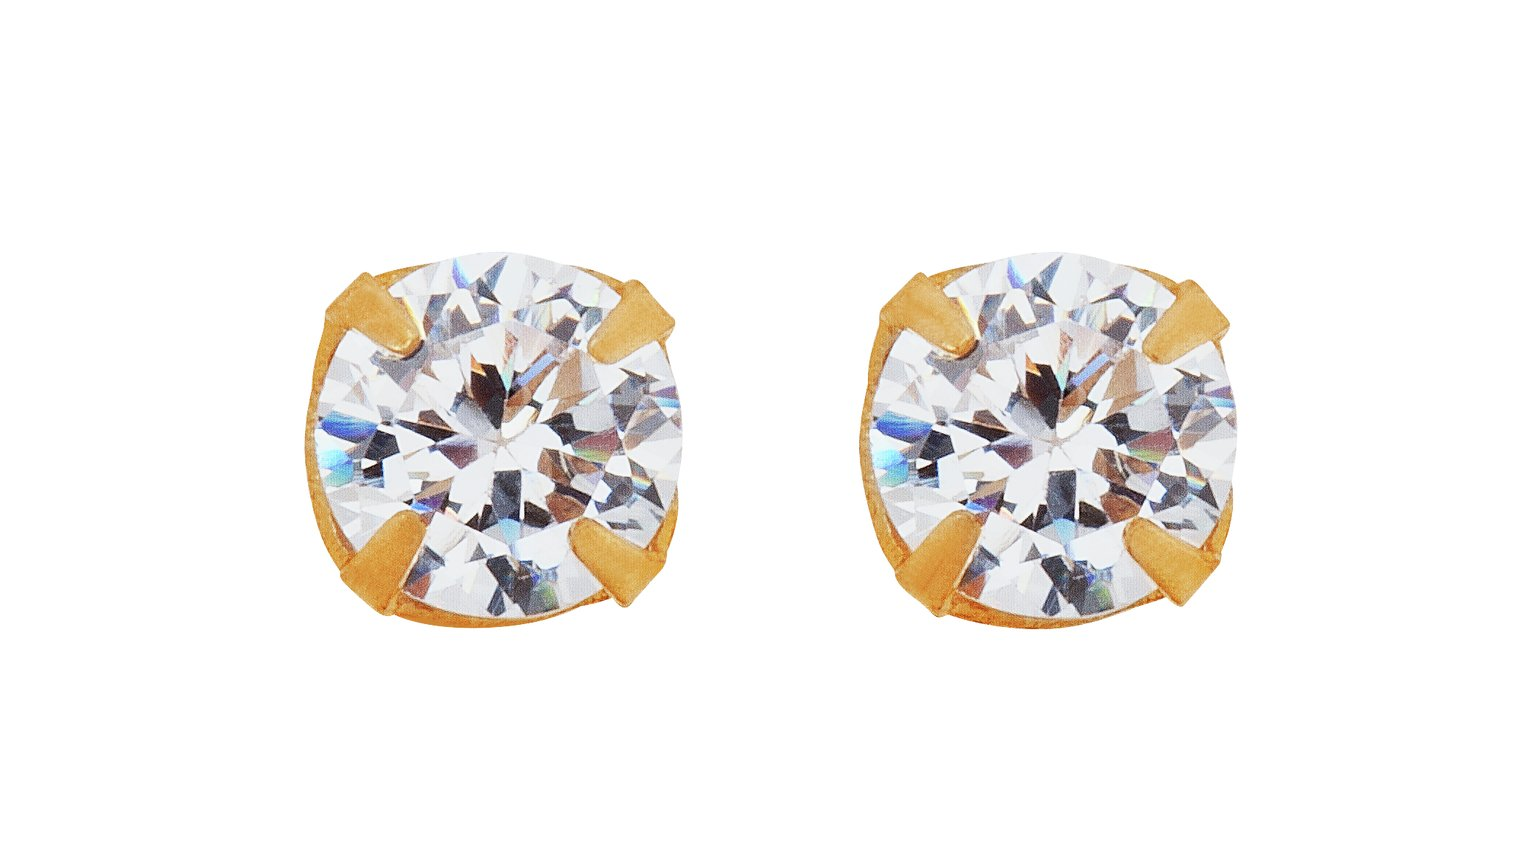 Image of Andralok - 9 Carat Gold - Cubic Zirconia - Stud Earrings.